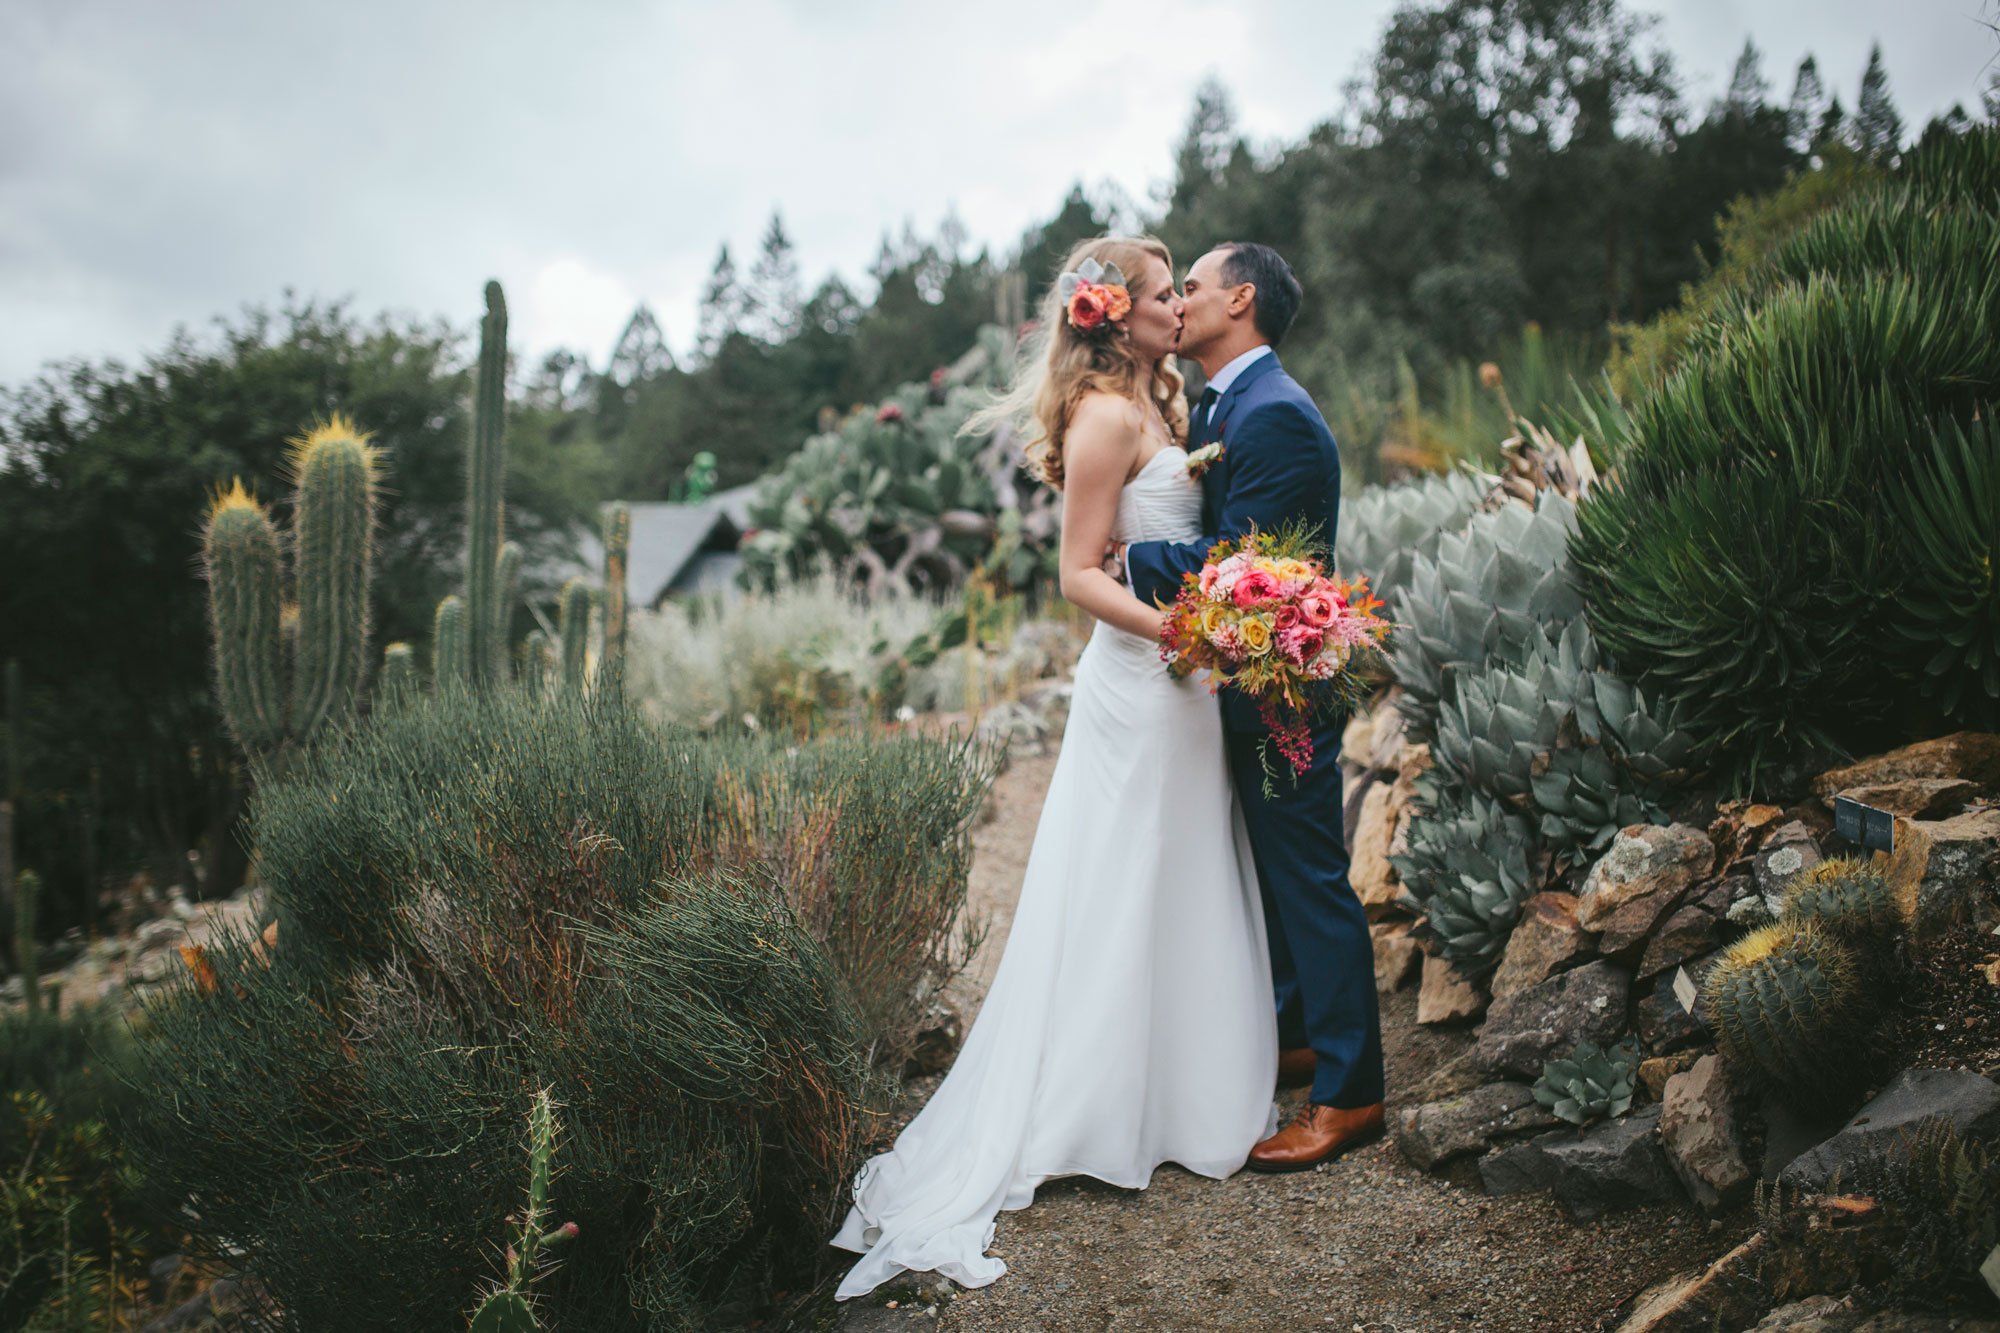 UC Berkeley Botanical Garden Wedding - by Becca Henry Photography